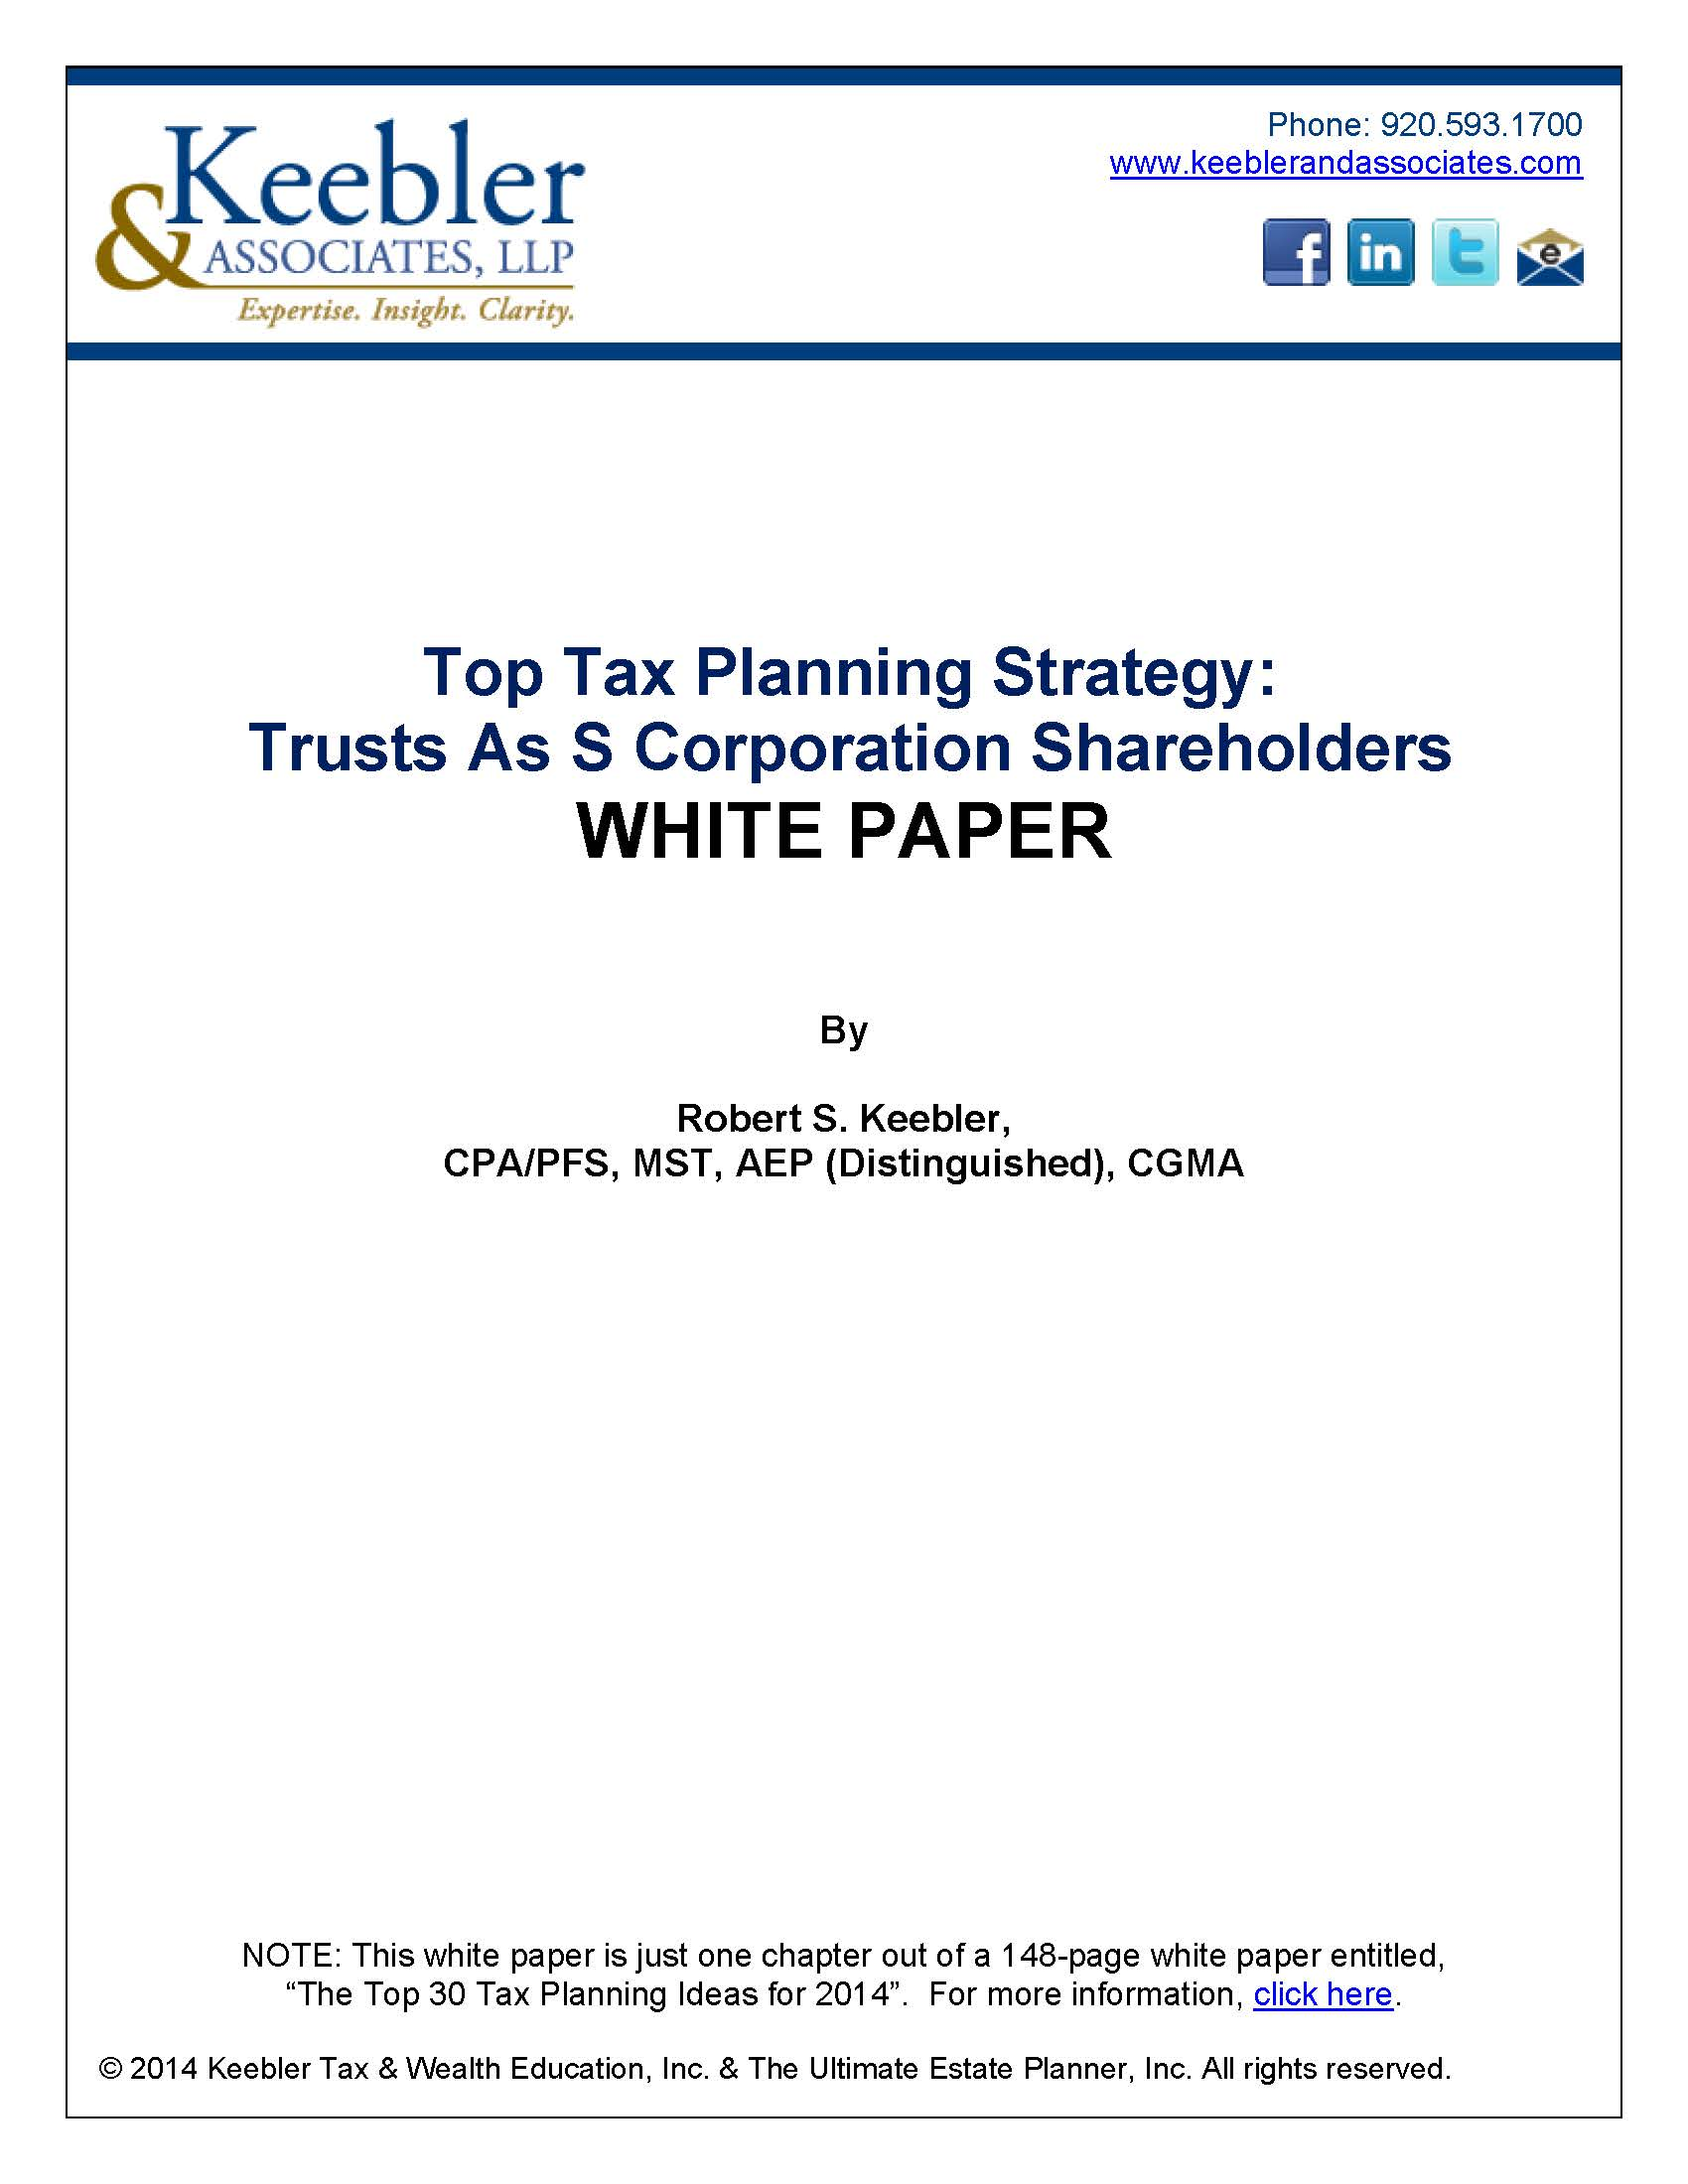 Trusts as S Corporation Shareholders